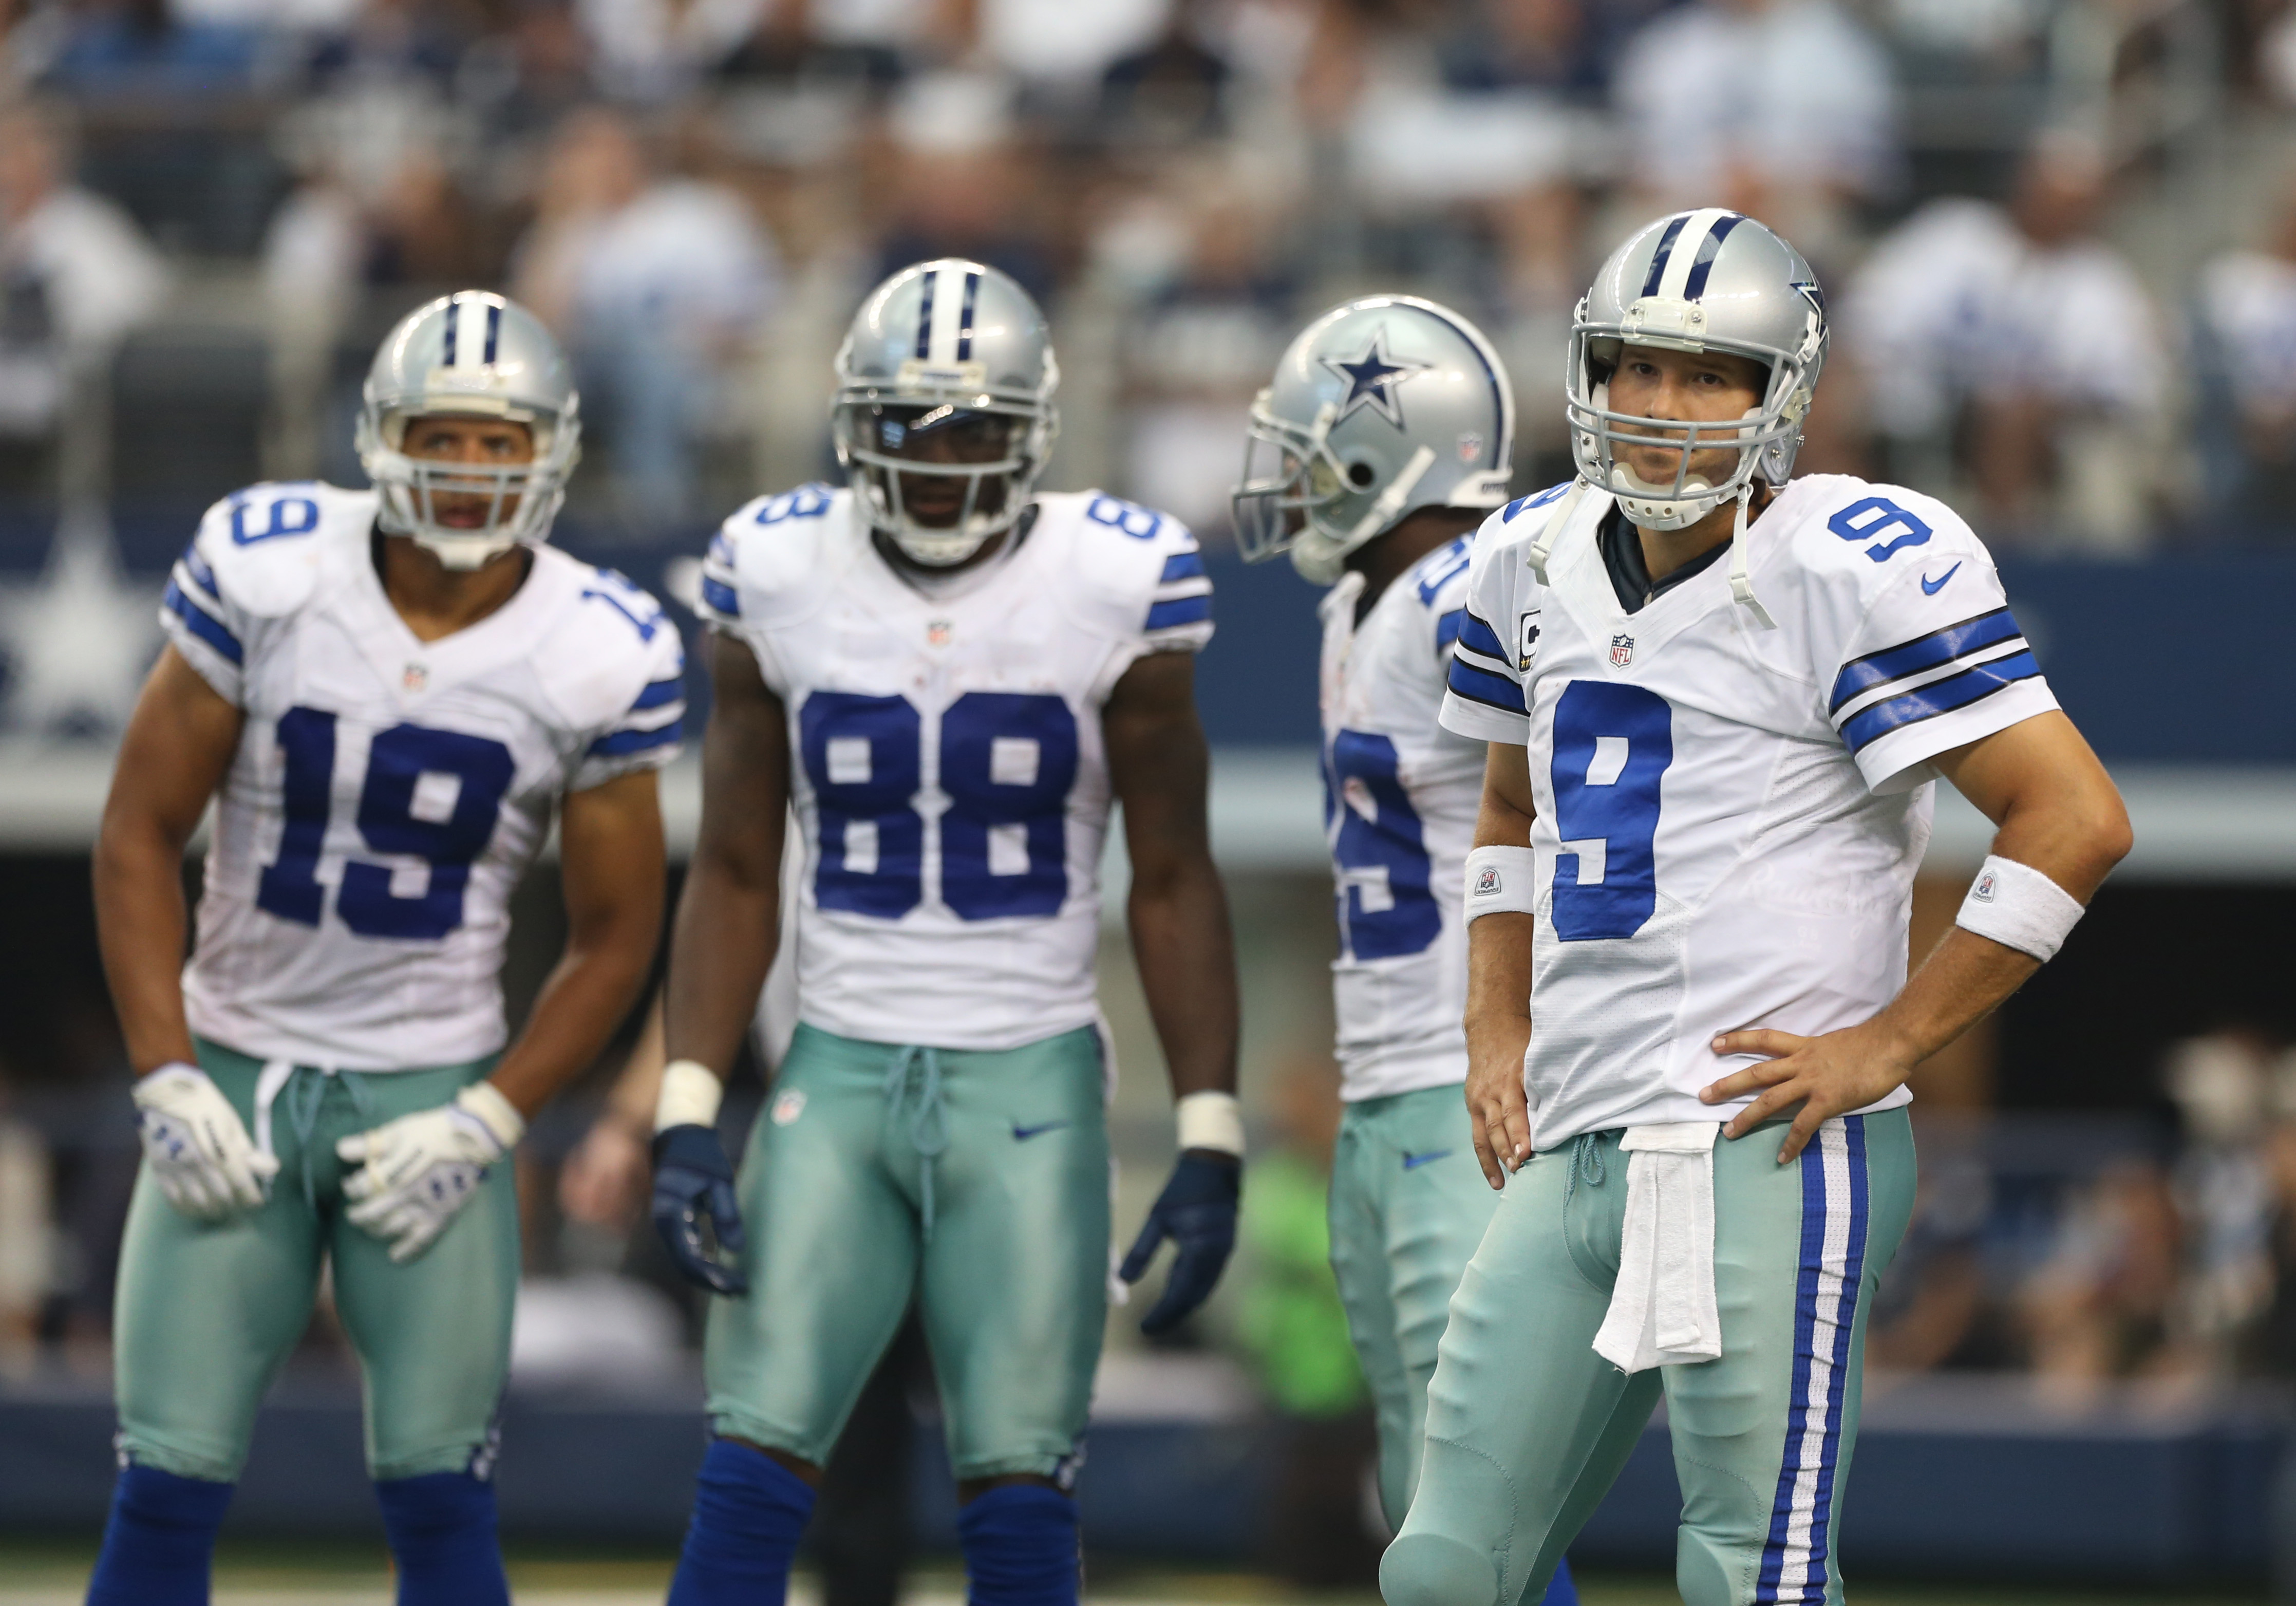 NFL: Tampa Bay Buccaneers at Dallas Cowboys